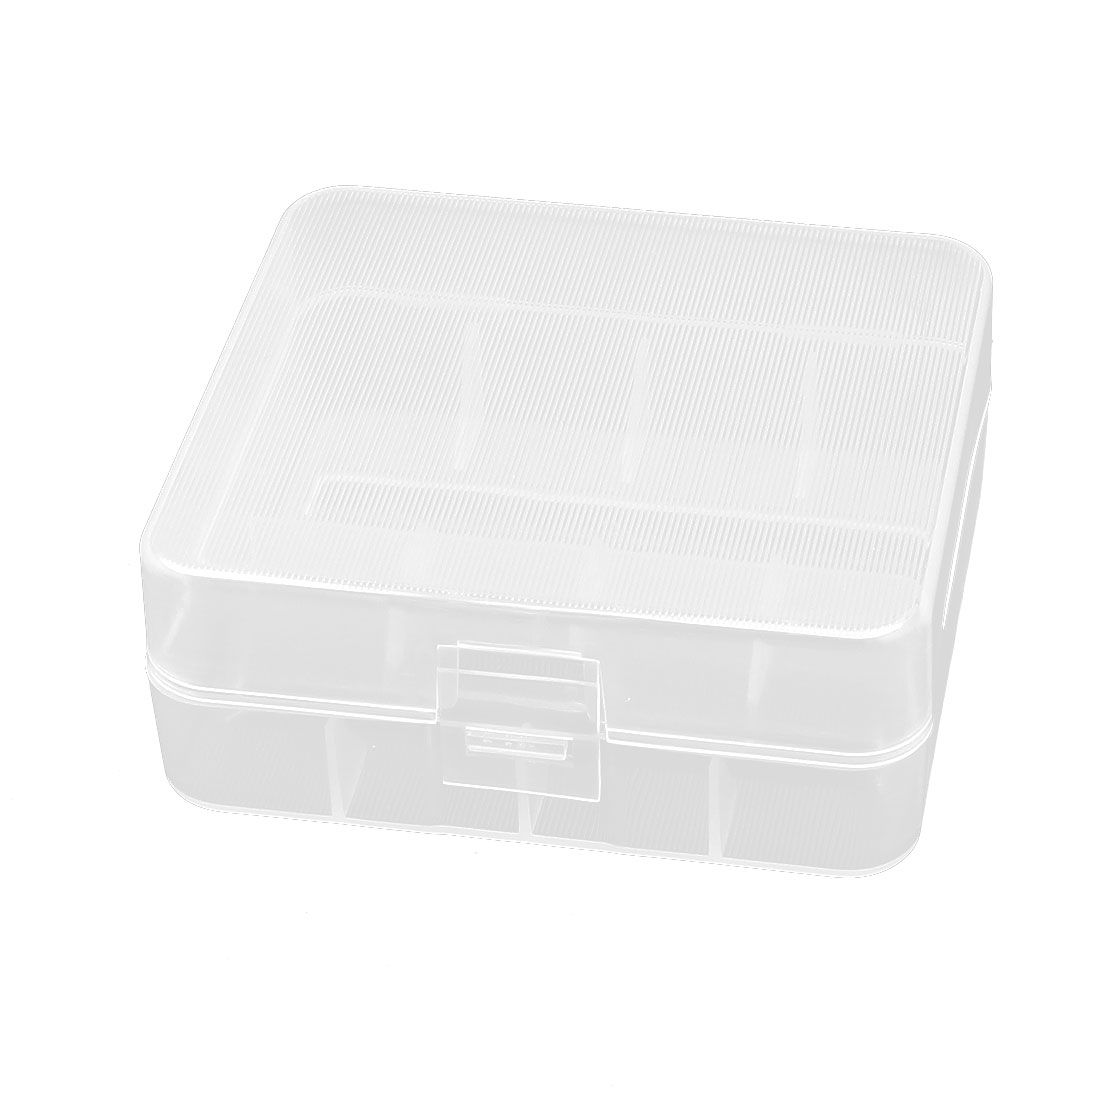 Hard Clear Plastic Case Holder Storage Box Container for 2 x 26650 Battery